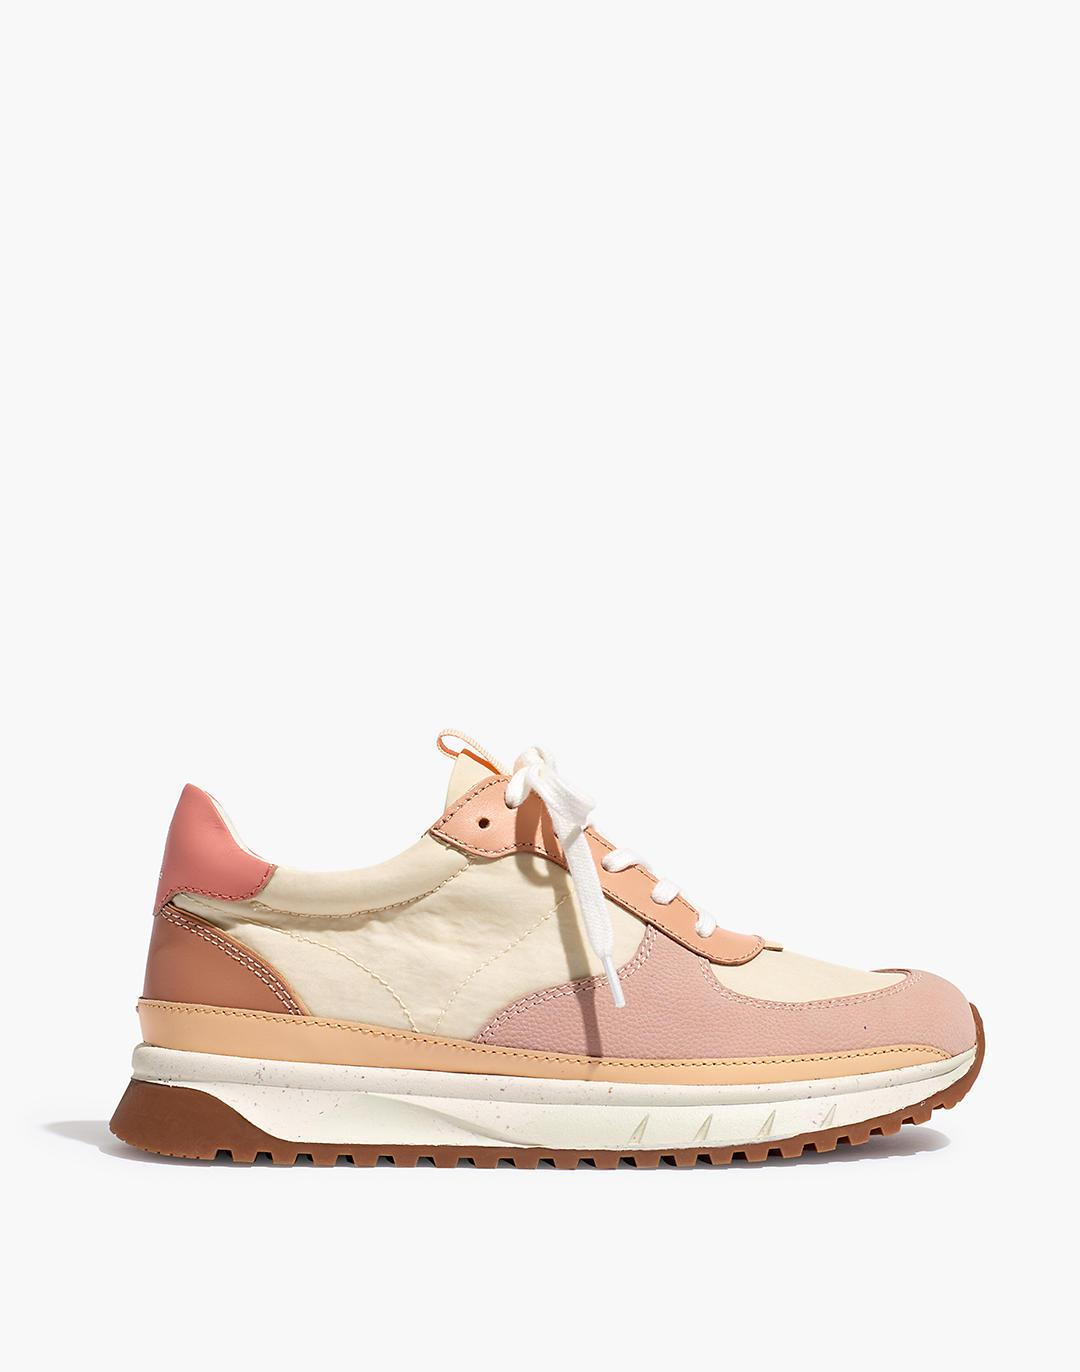 Kickoff Trainer Sneakers in Washed Nylon and Leather 1